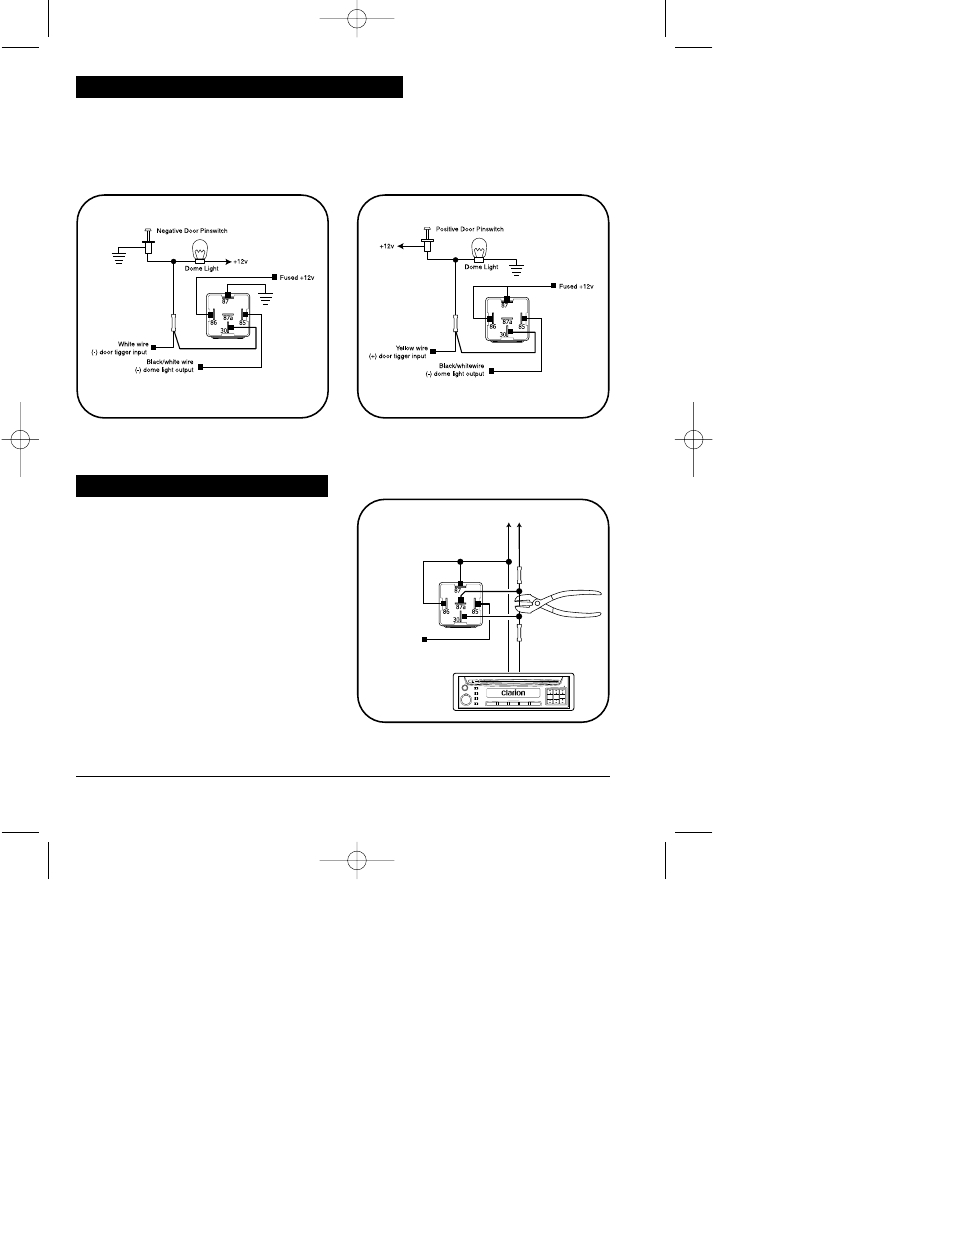 medium resolution of dome light control relay diagrams auxiliary function 2 output clarion ungo ms3001 user manual page 20 26